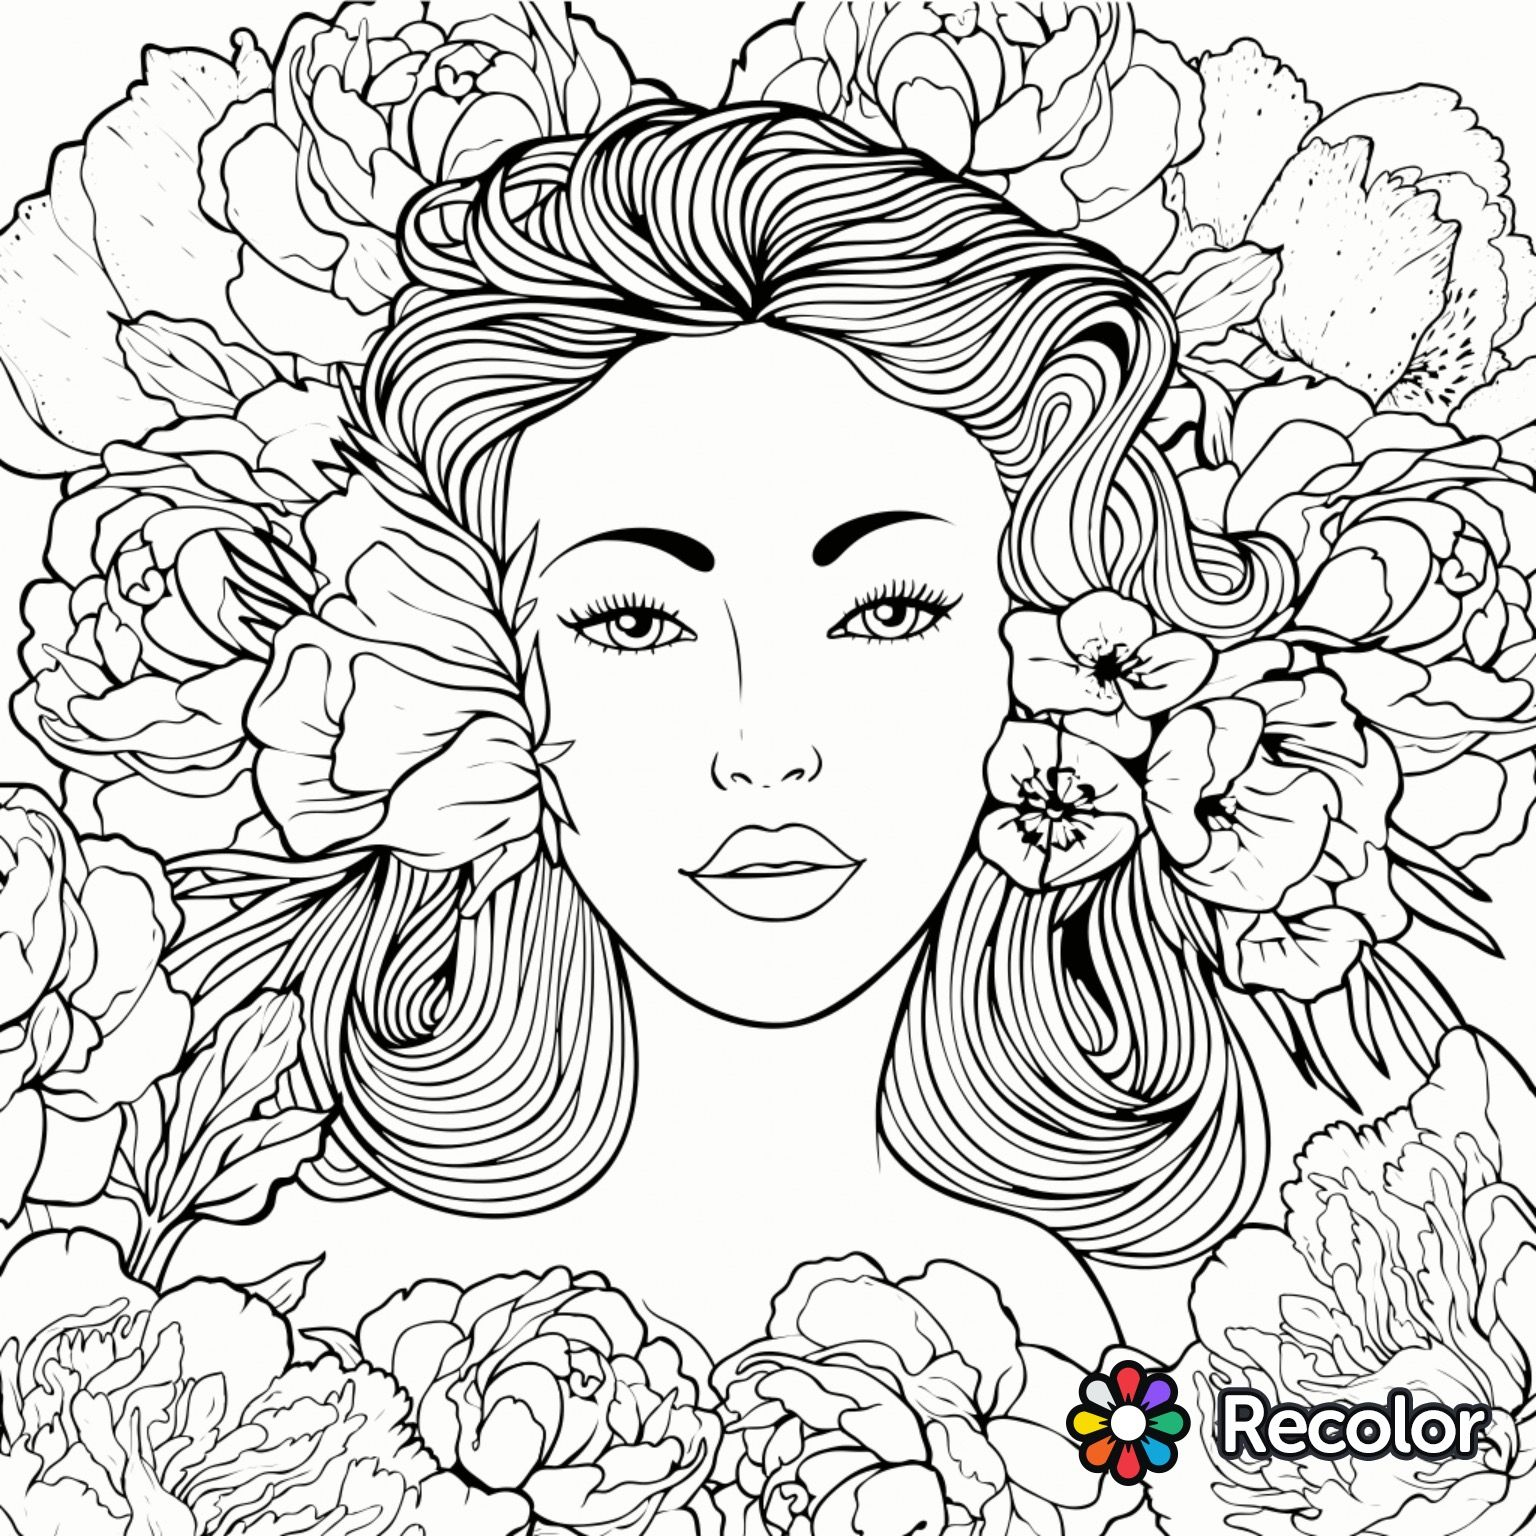 Beauty Coloring Page Recolor App Beautiful Women Coloring